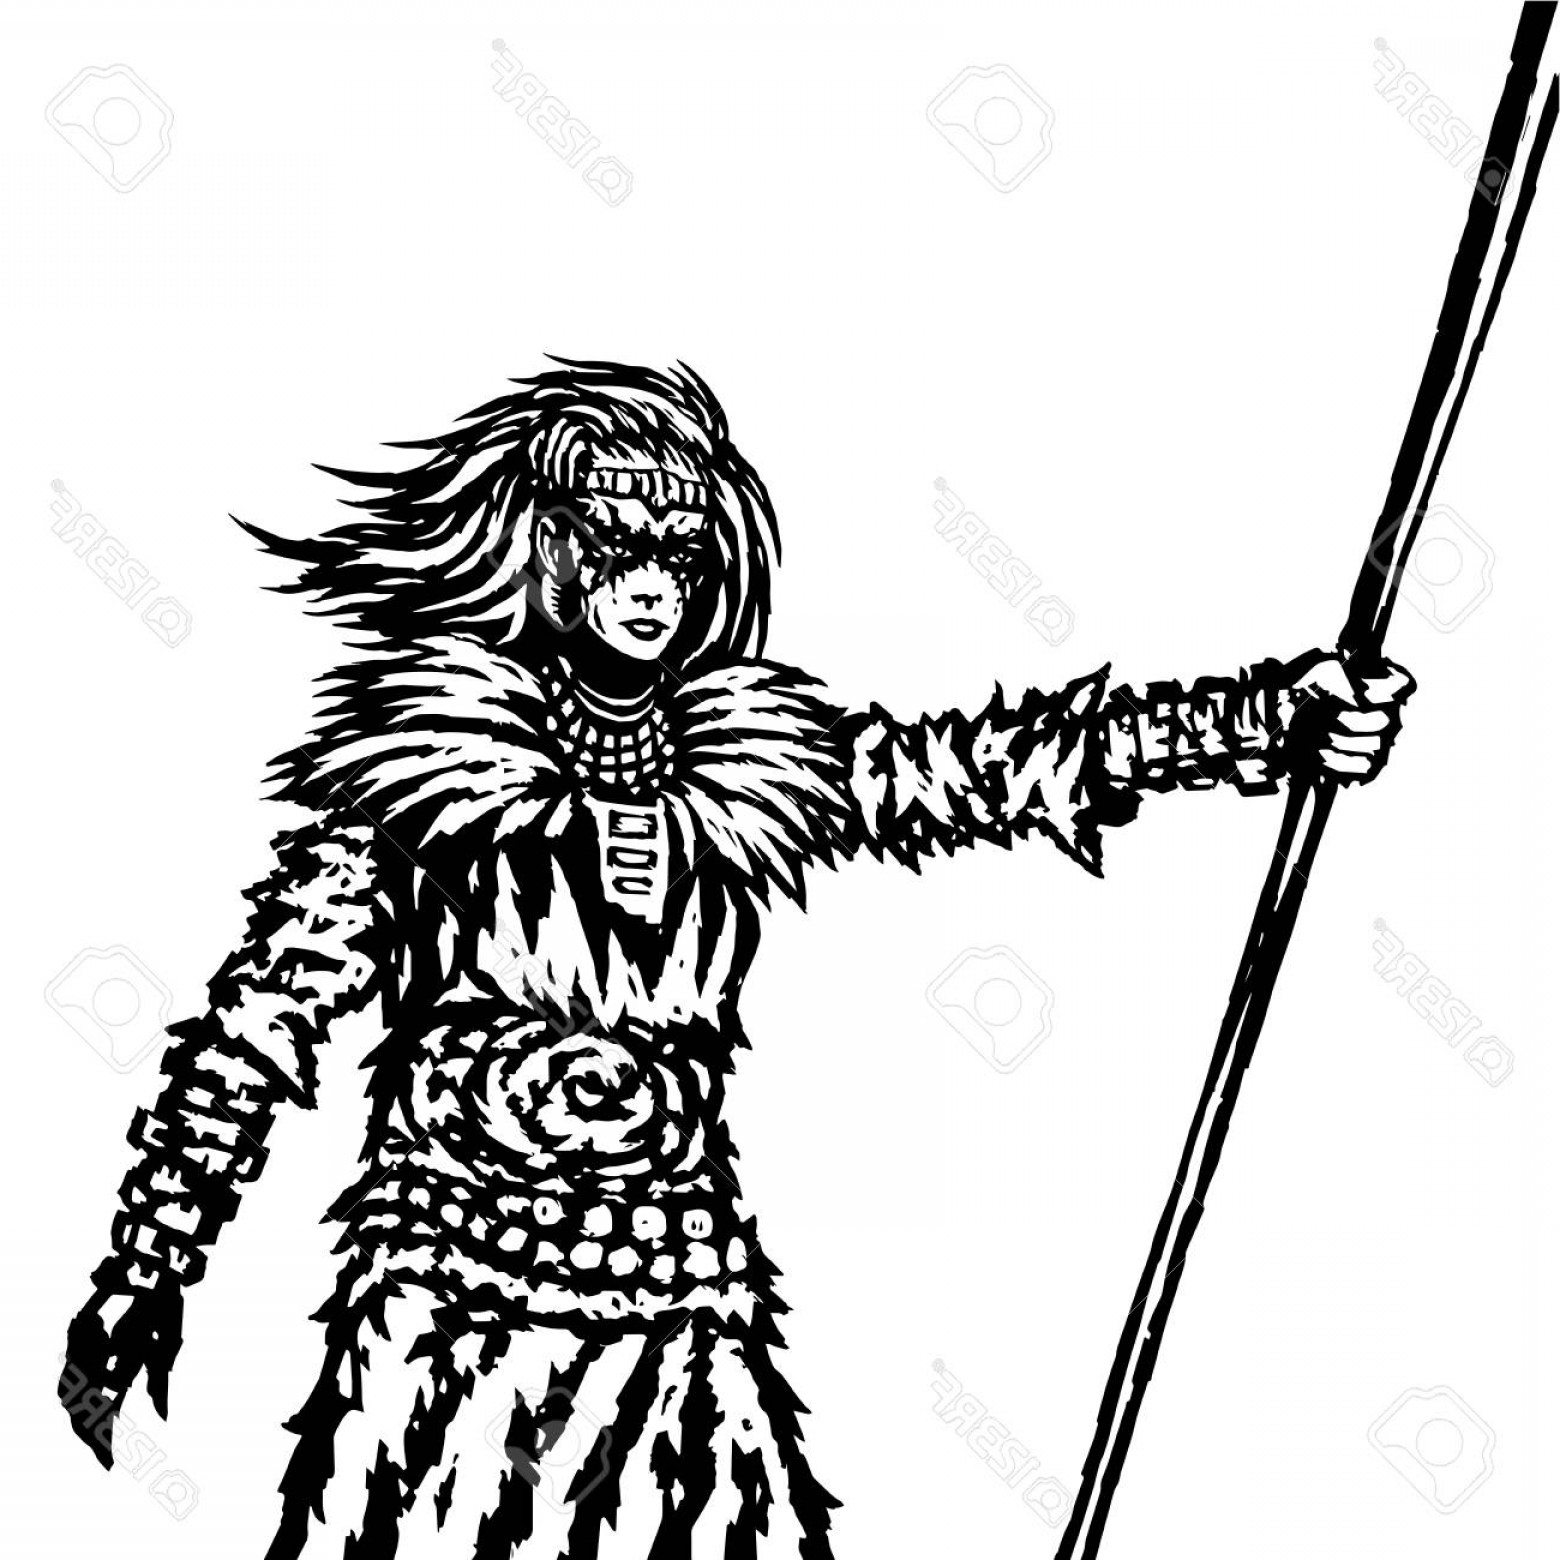 Pike Spear Vector: Photostock Vector Warrior Girl From A Wild Tribe With A Spear Vector Illustration Fantasy Artwork In Black And White C